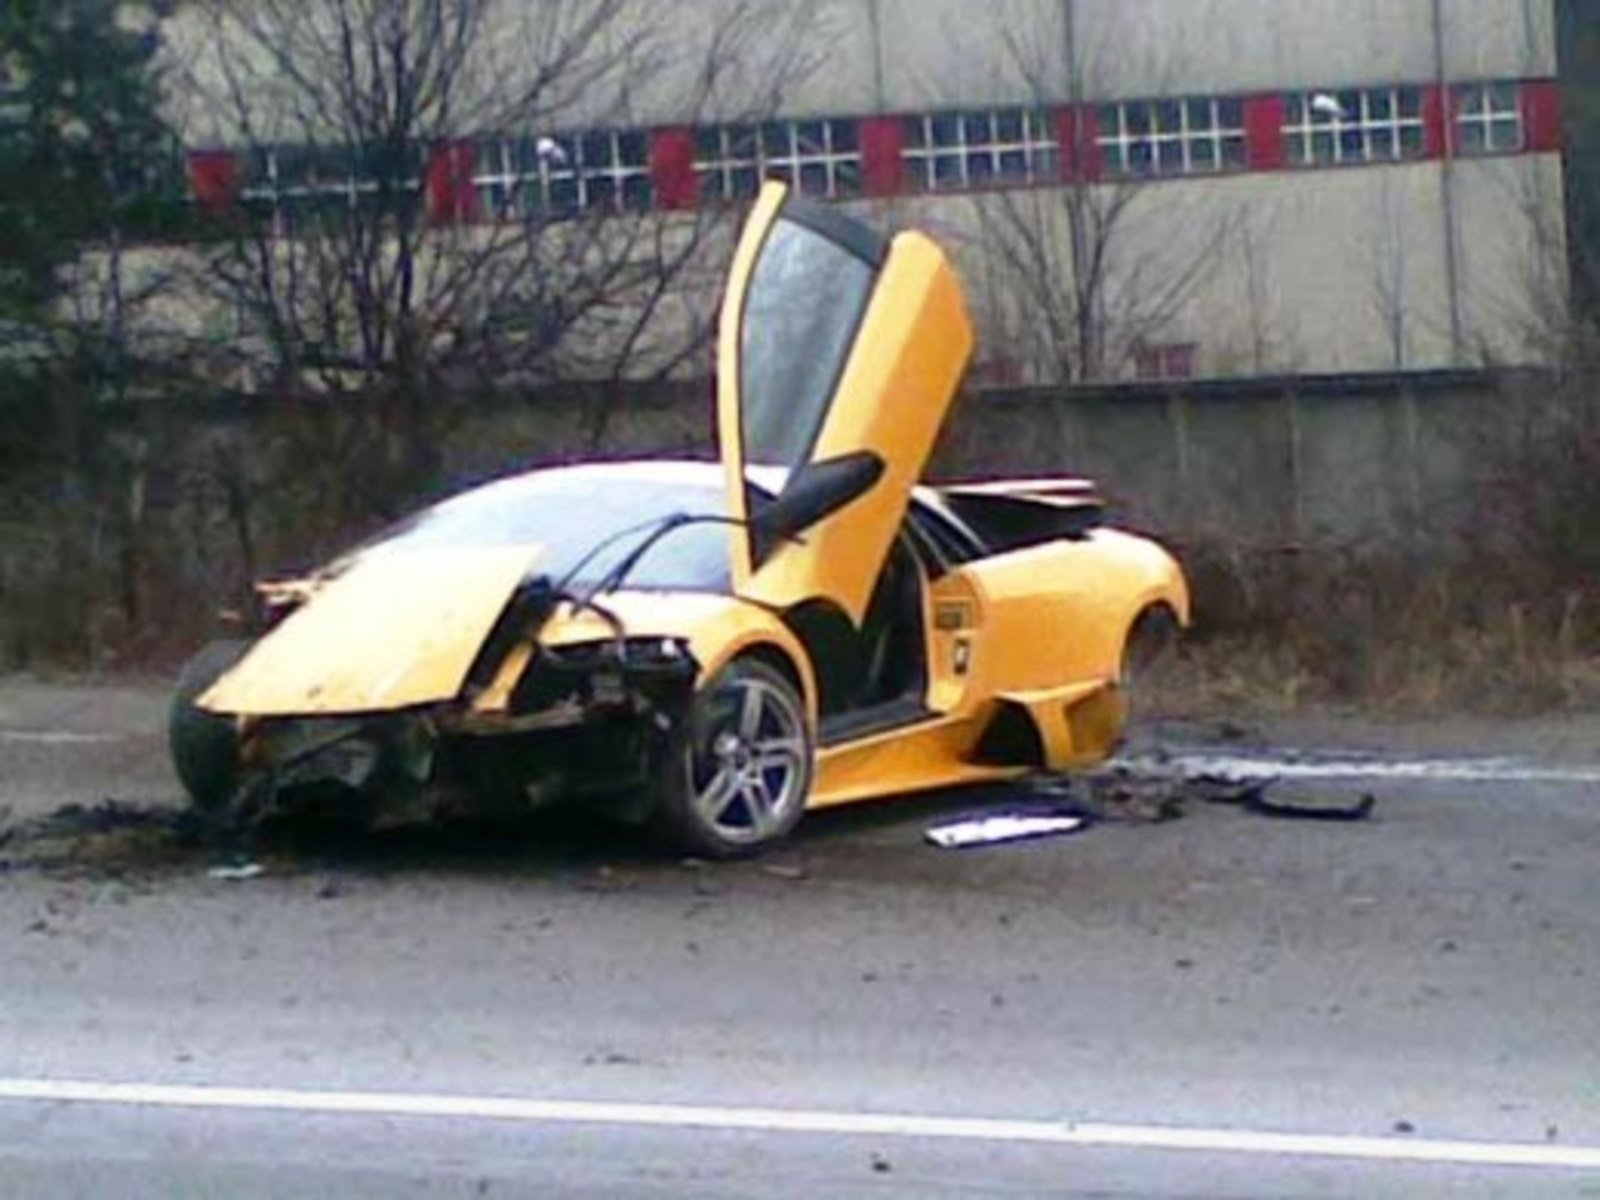 Lamborghini Murcielago LP640 Crashed